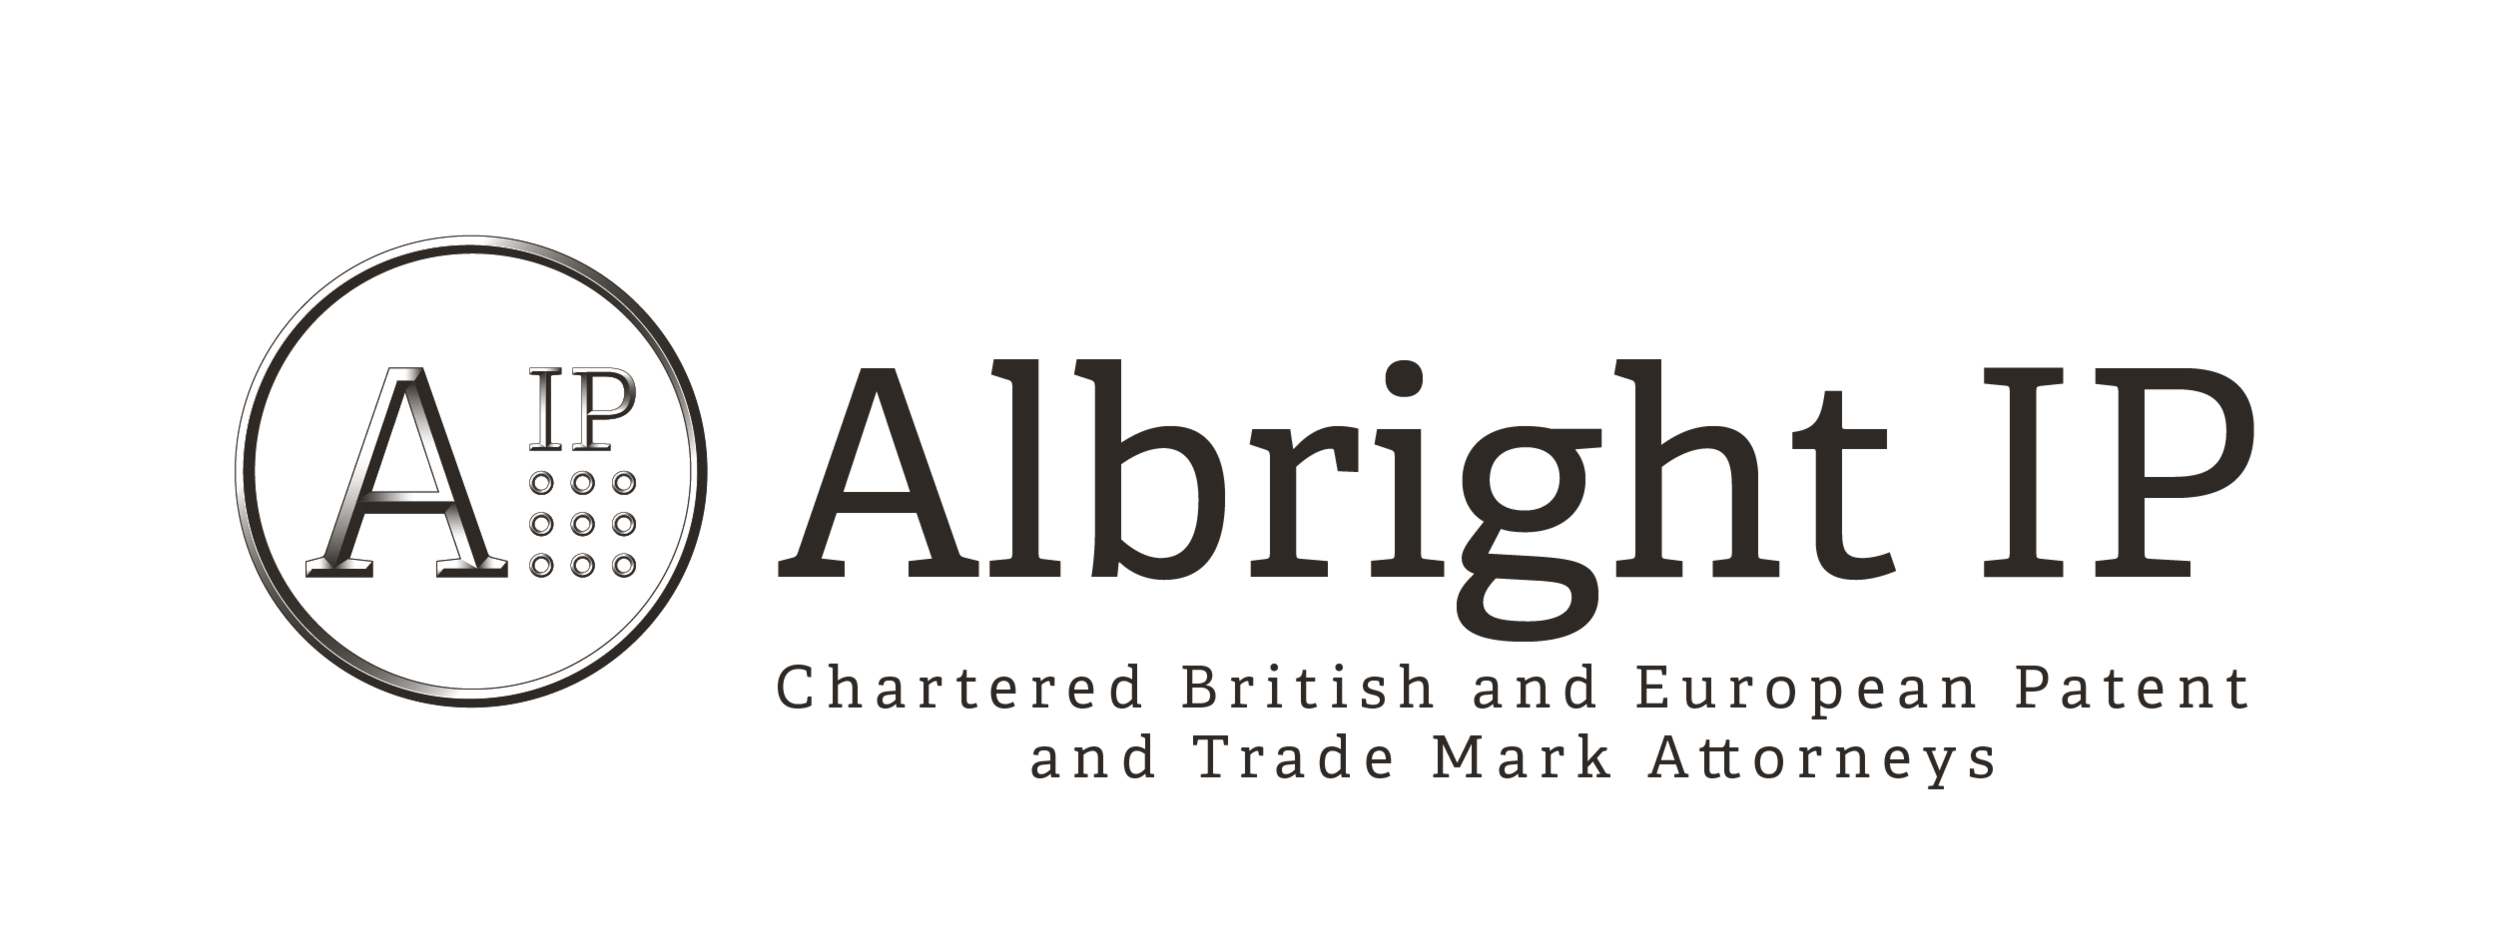 albright-ip-logo.png